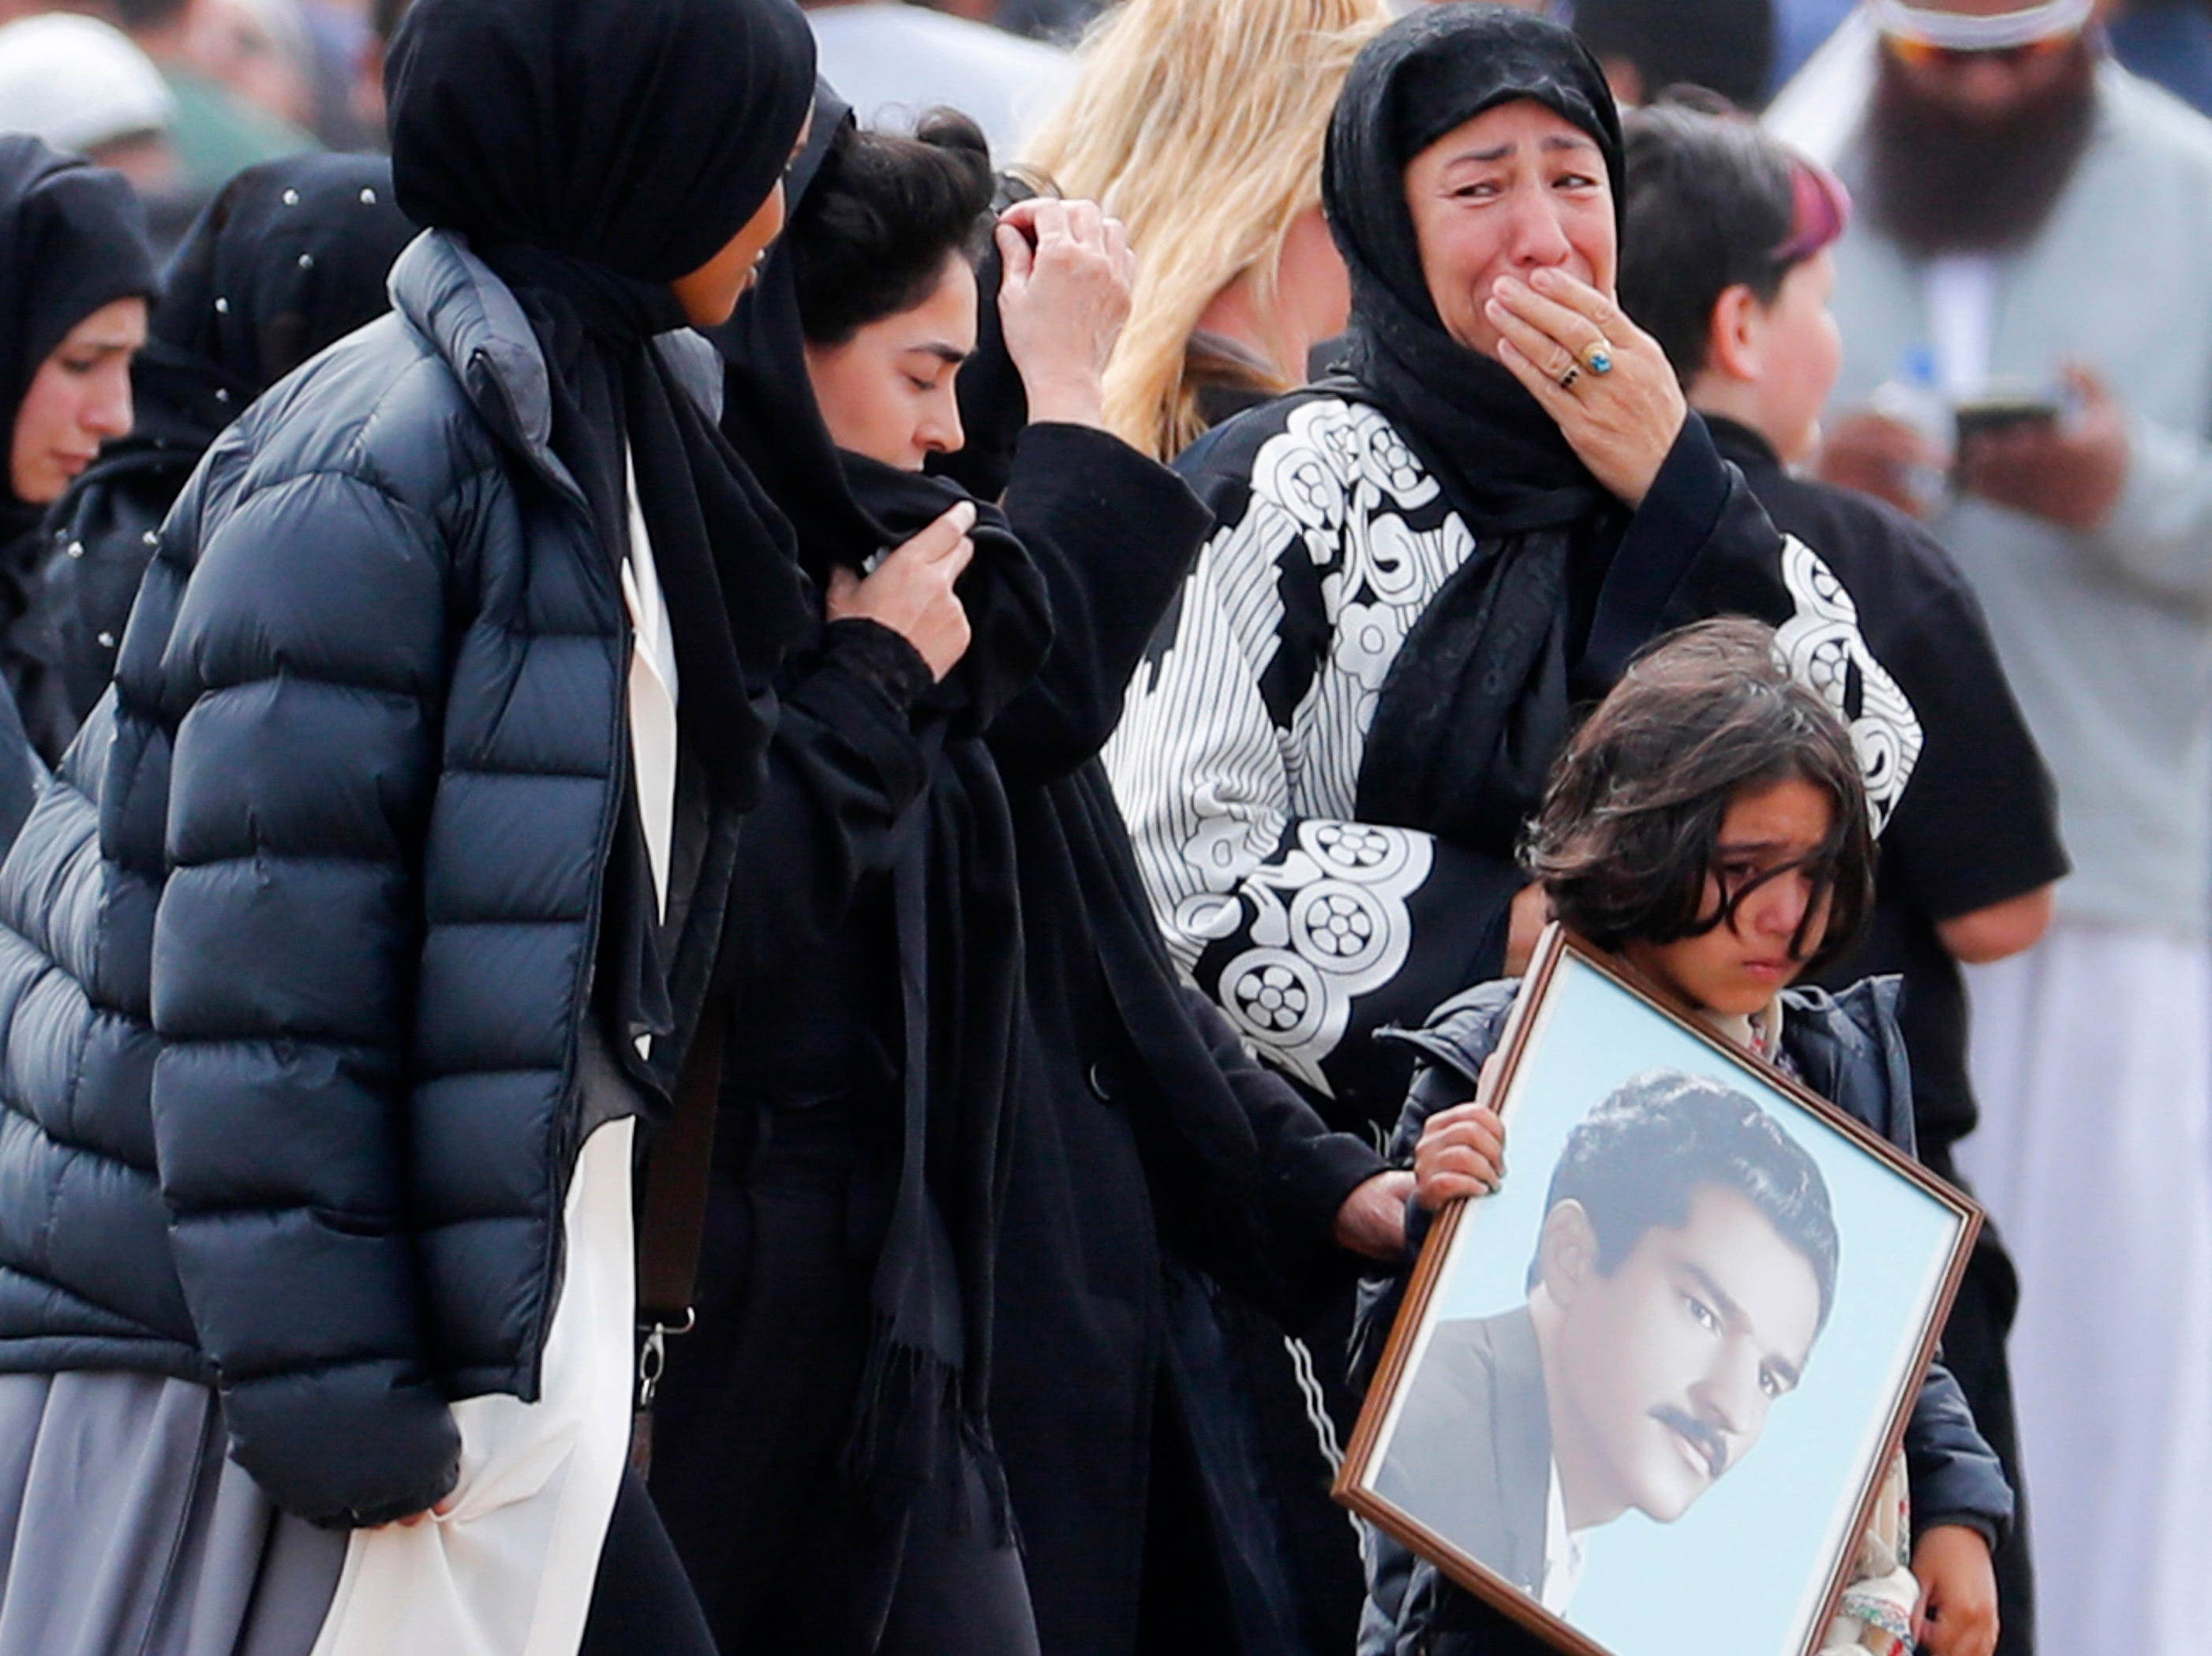 Mourners arrive for a burial service of a victim from the March 15 mosque shootings at the Memorial Park Cemetery in Christchurch, New Zealand on March 21, 2019.